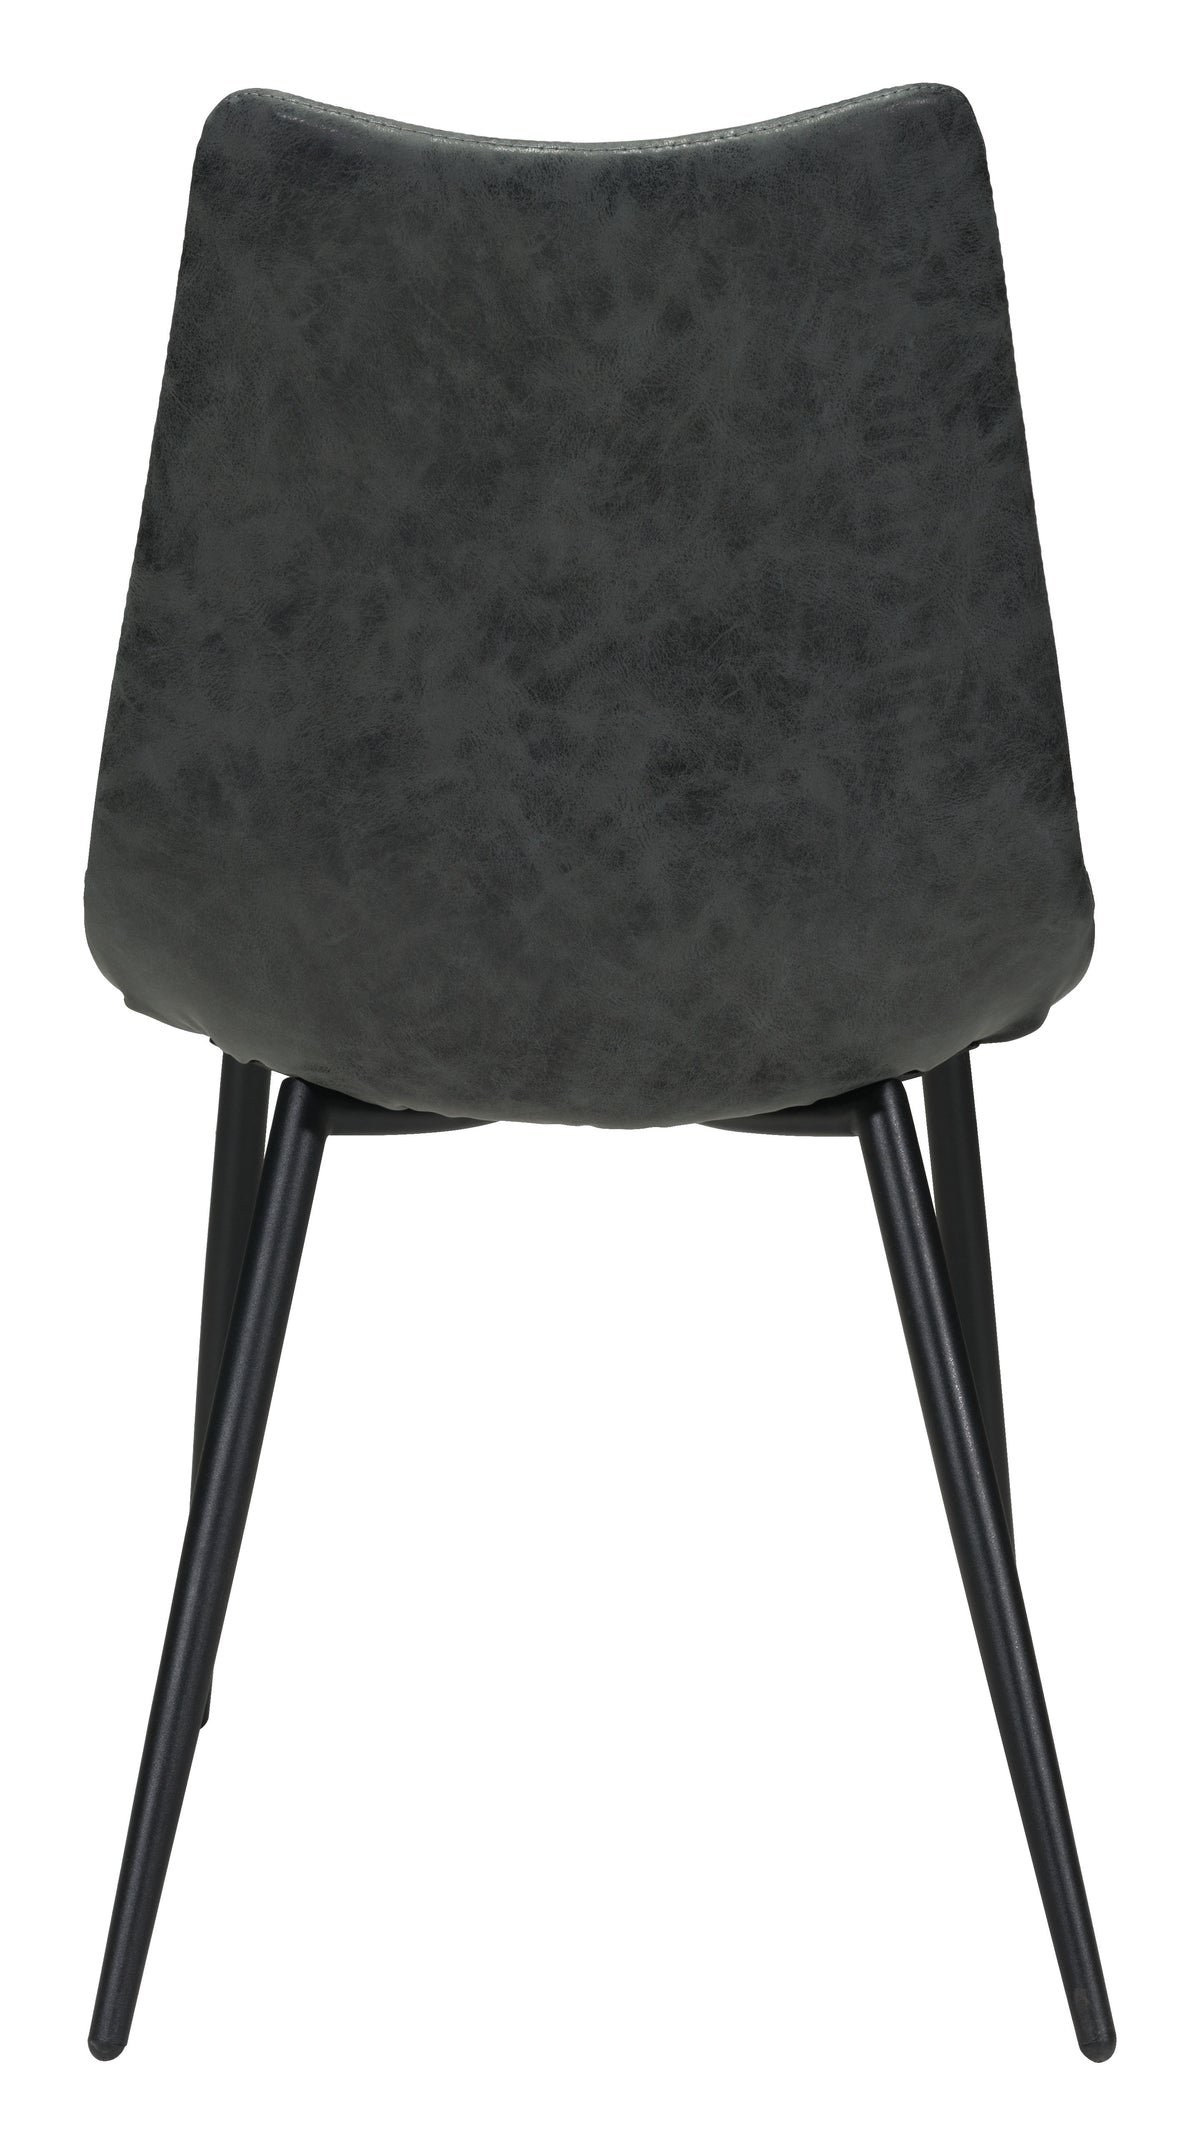 Haro Dining Chair Black Faux Leather - Set of 2